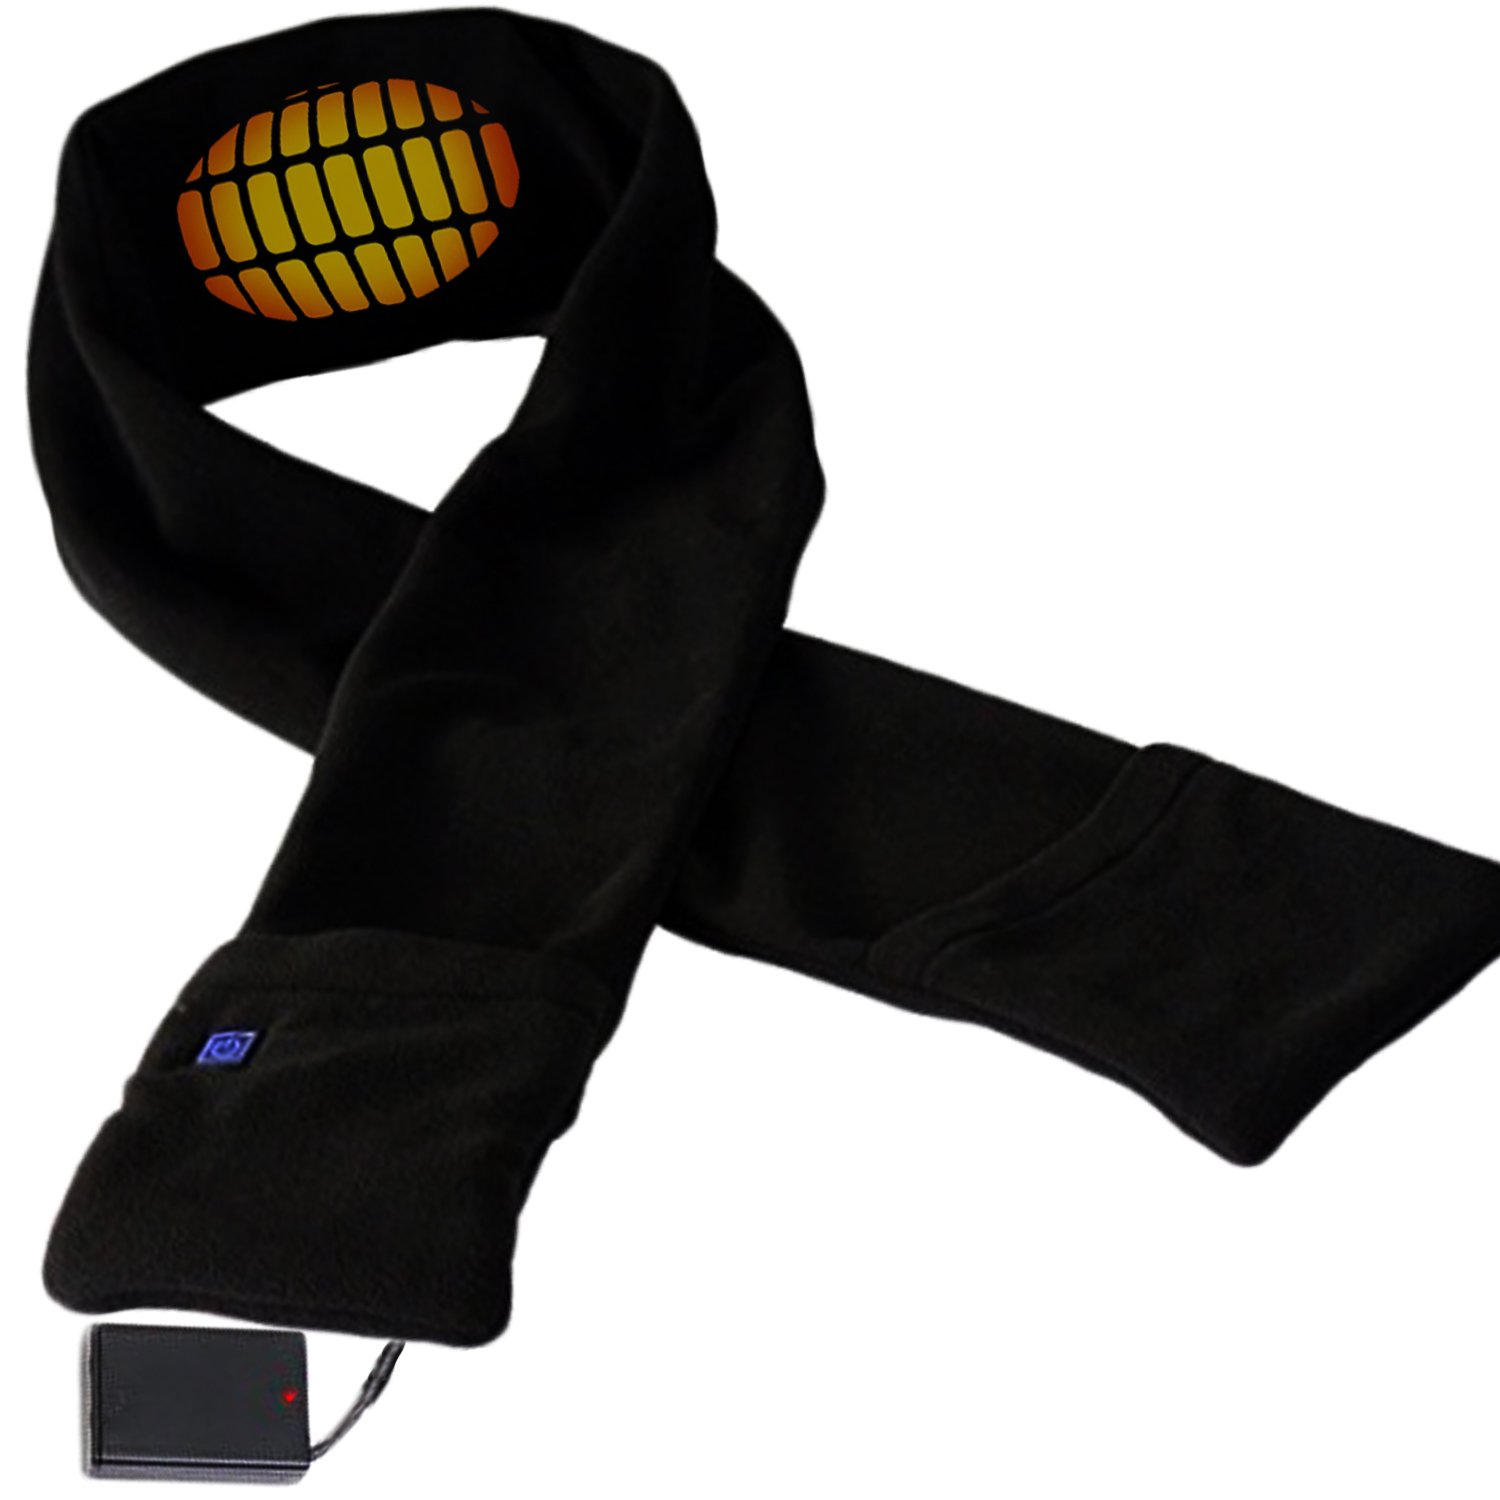 Heated Scarf with Neck Heat Pad - Electric Battery Operated Heated Neck Wrap, Heated Clothing for Men, Heated Scarves for Women, Cold Weather Neck Warmer Fleece Scarf with Pockets to Keep Hands Warm